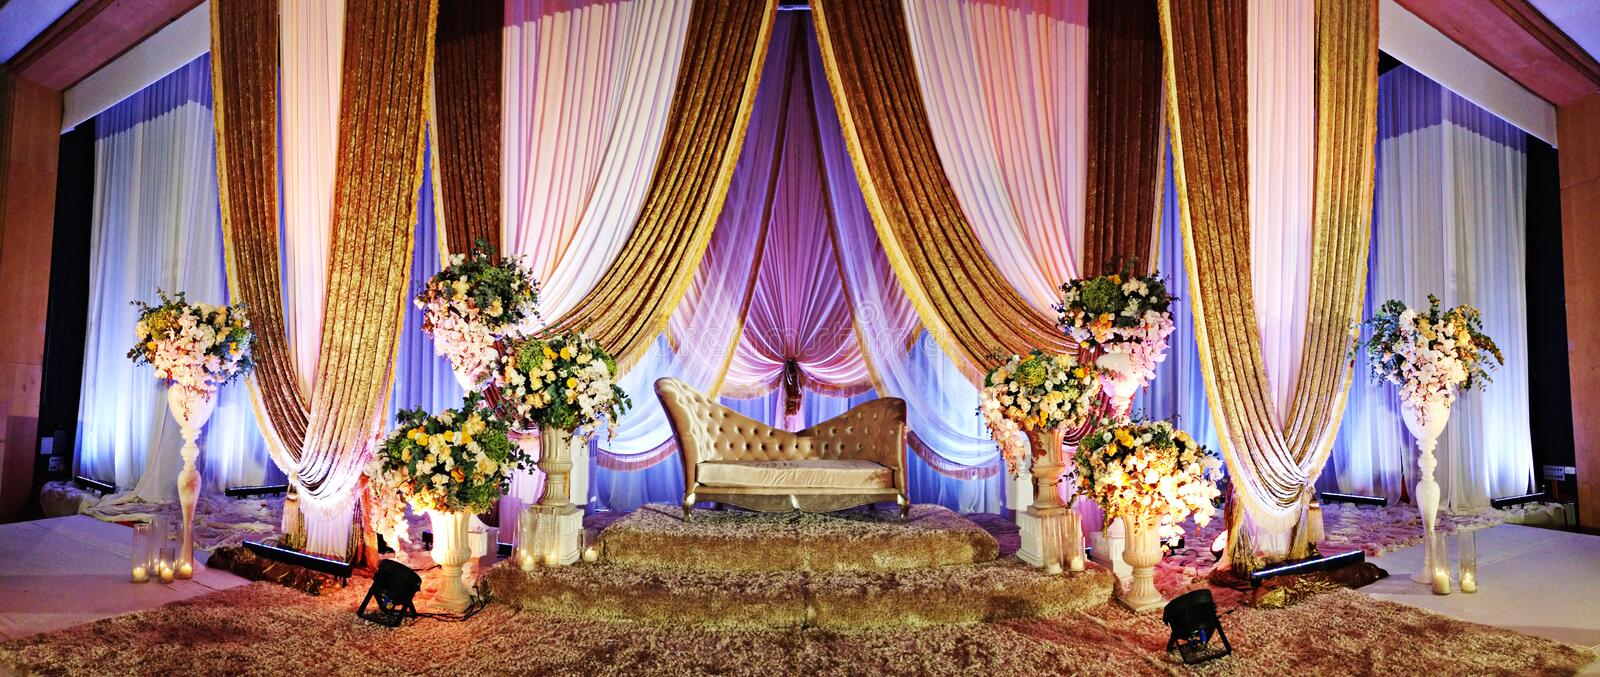 Wedding Altar. A beautifully decorated Wedding Altar on a stage at a wedding function royalty free stock image